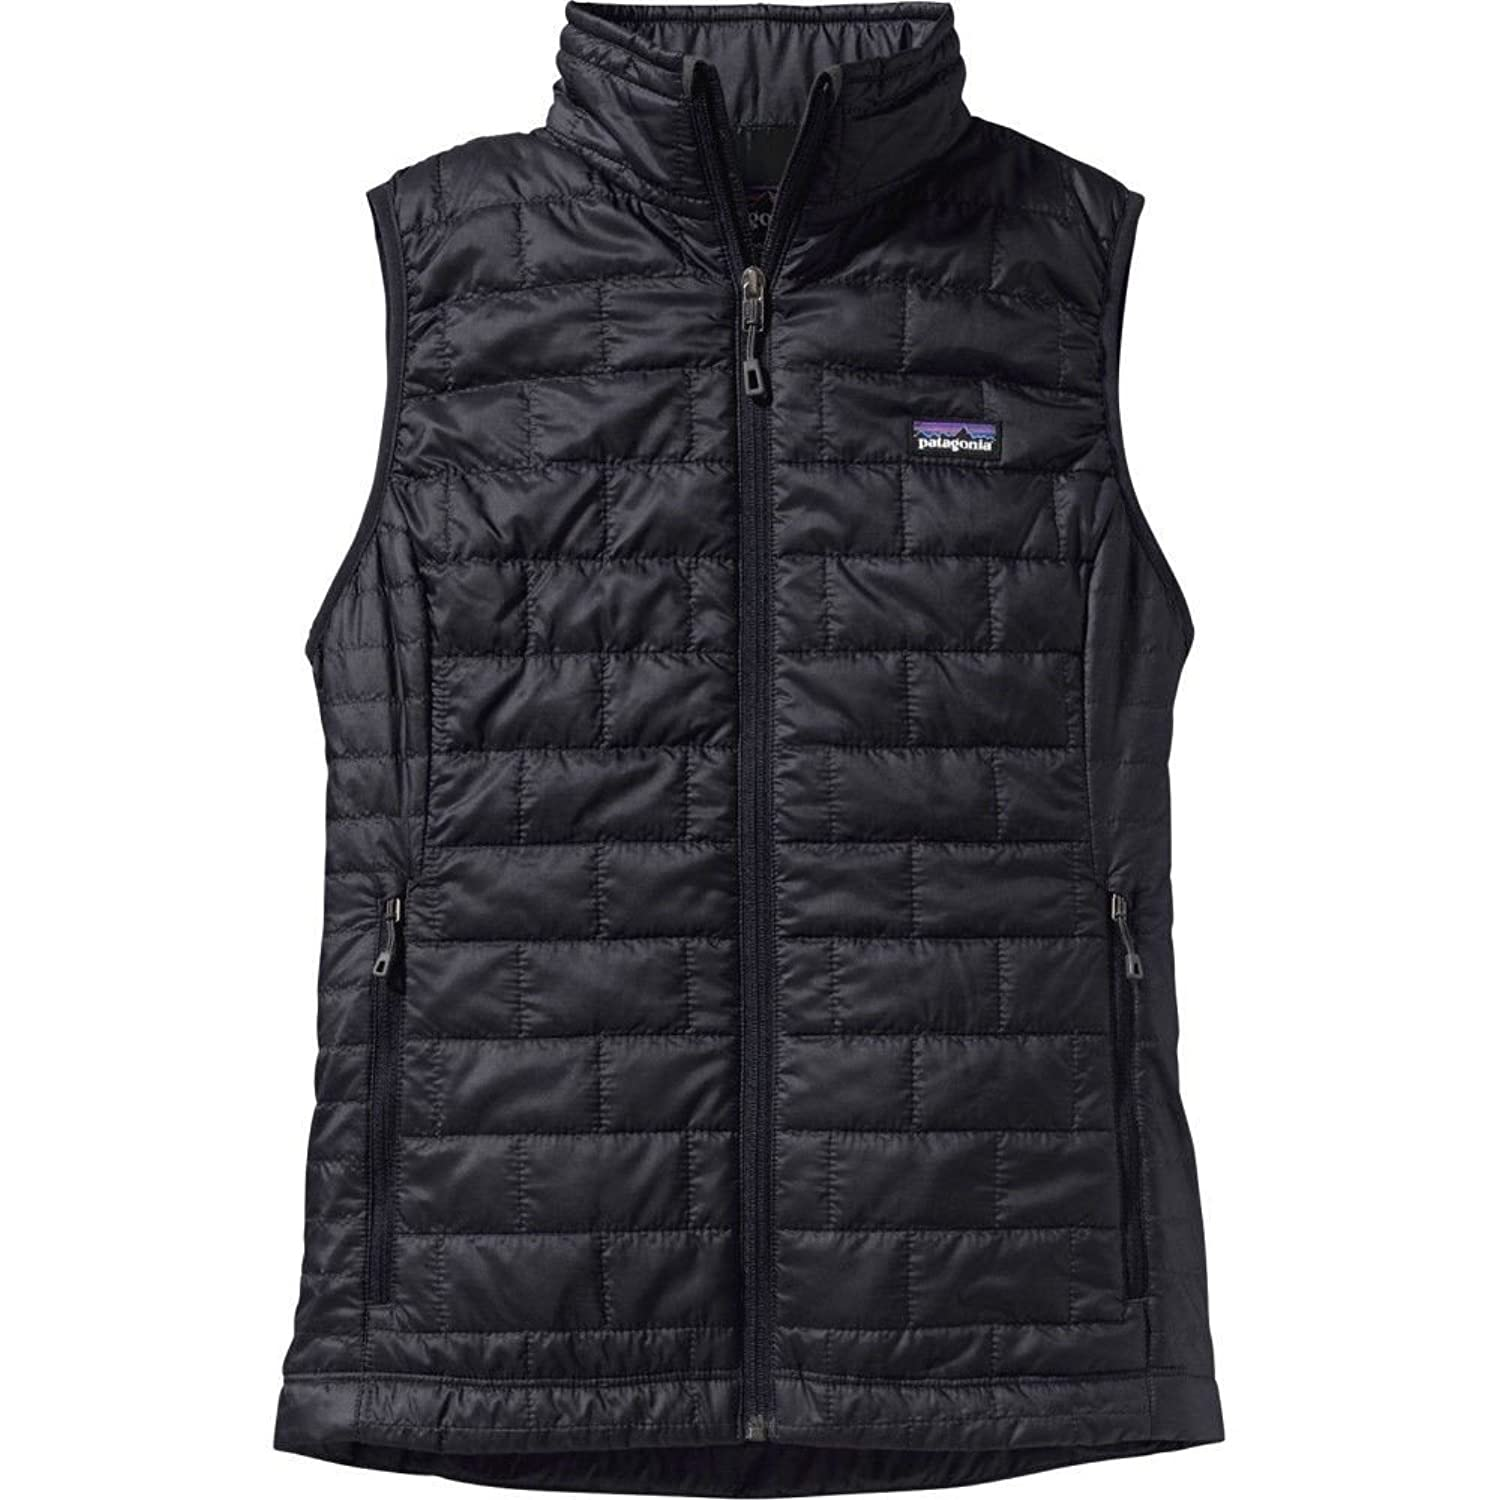 パタゴニア(Patagonia)Nano Puff Insulated Vest